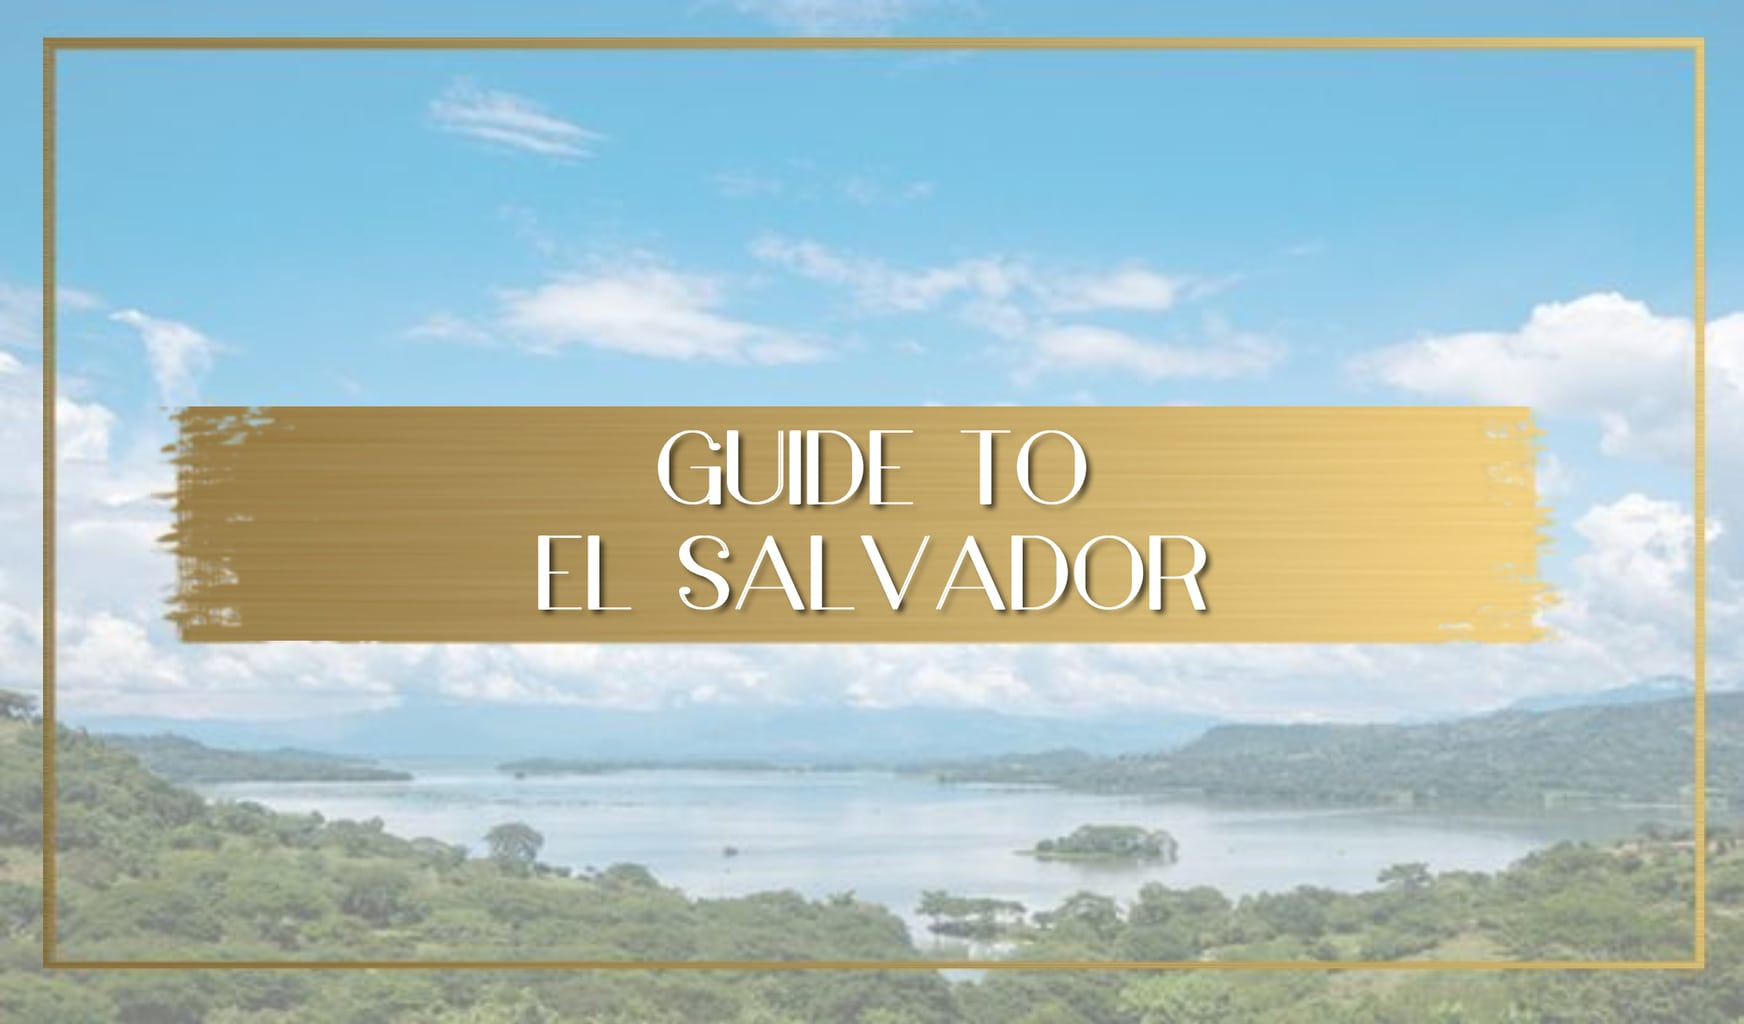 Guide to El Salvador main